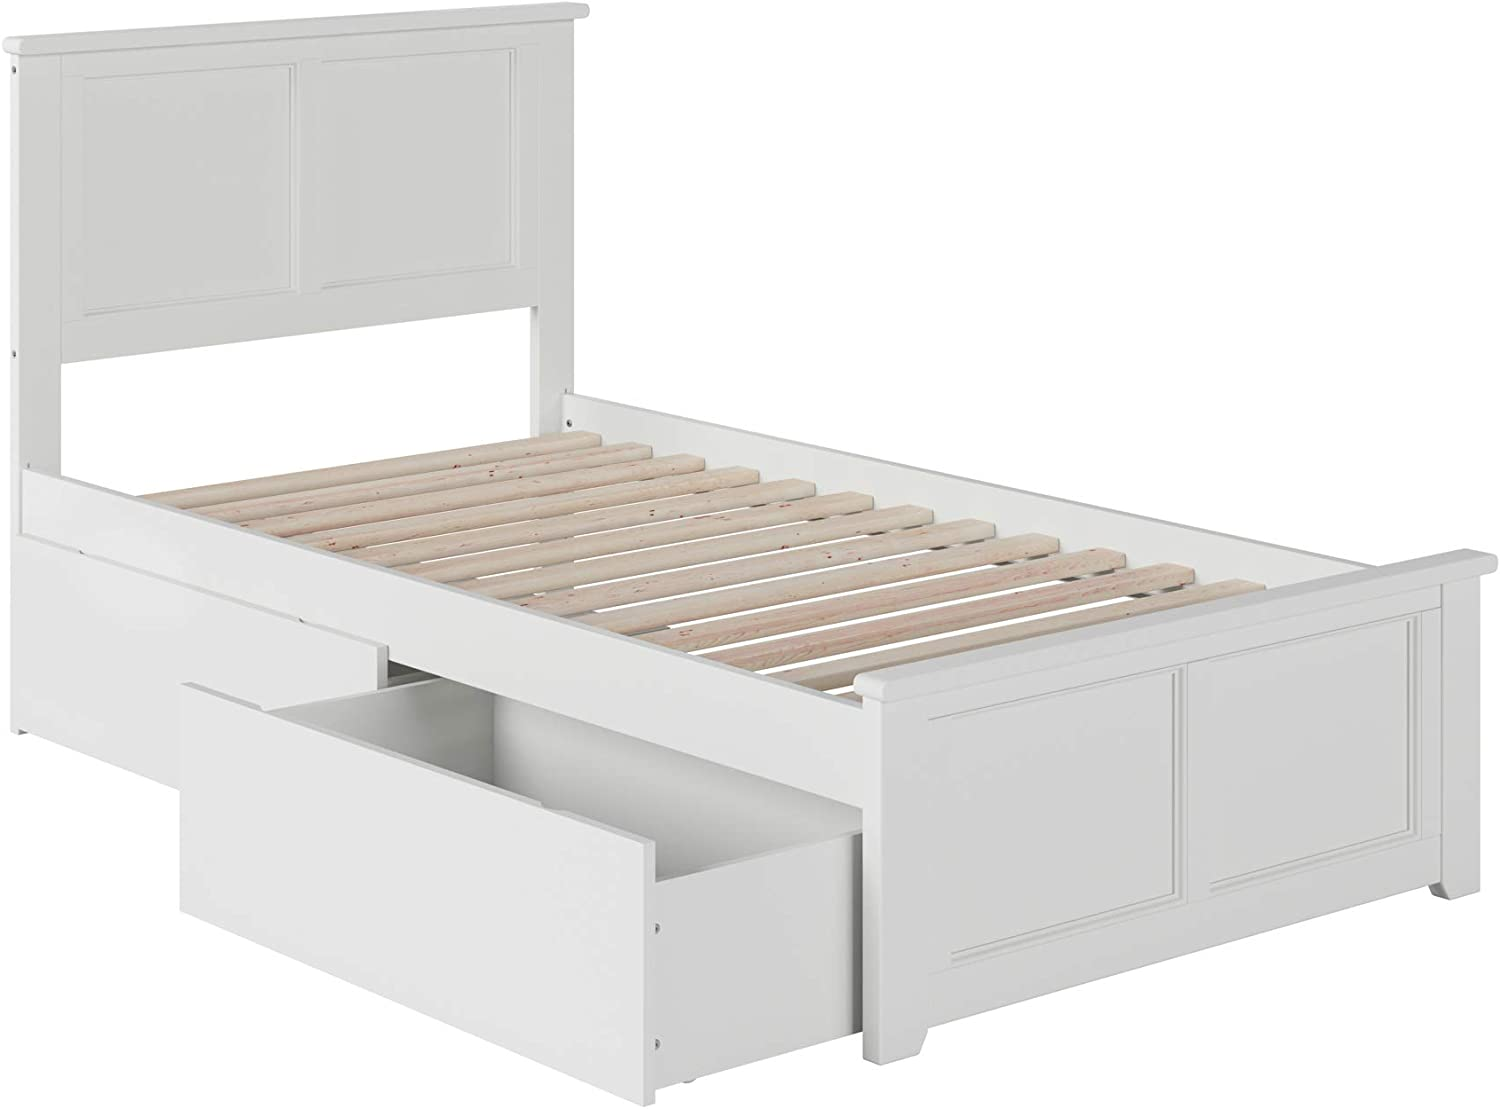 Atlantic Furniture Madison Platform Bed with Matching Foot Board and 2 Urban Bed Drawers, Twin, White